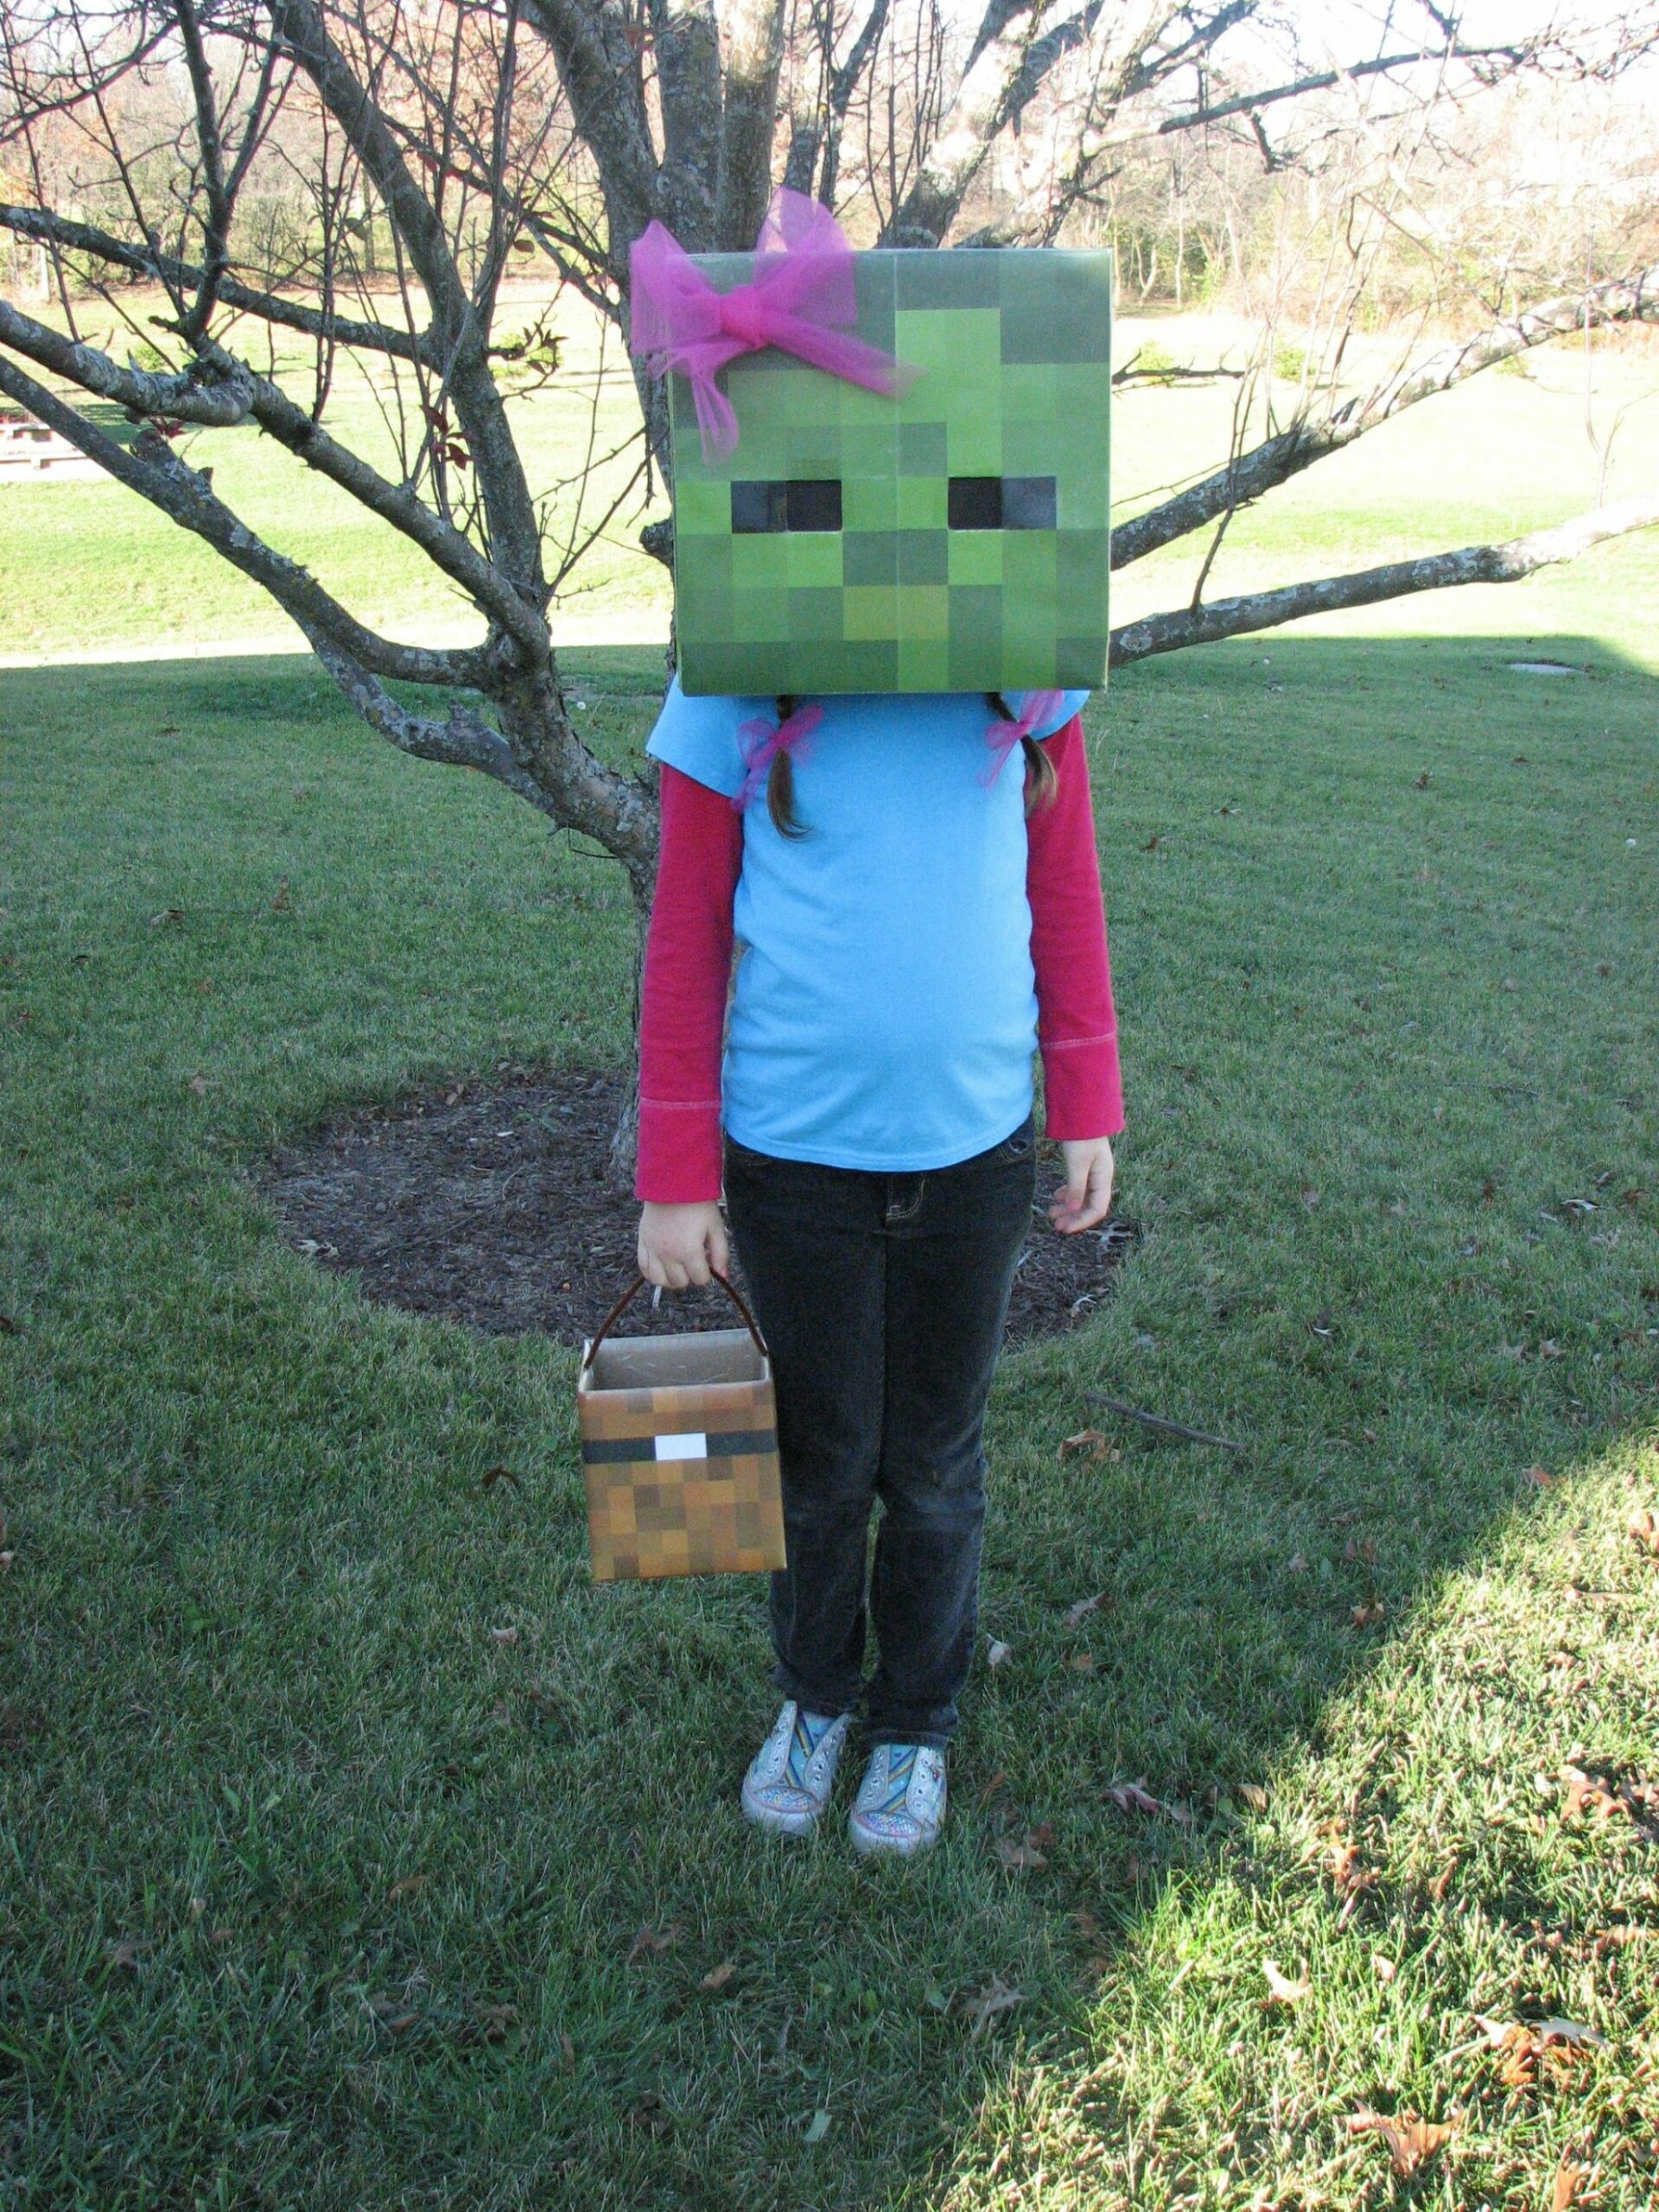 Minecraft Zombie Costume Like the chest she is holding ..